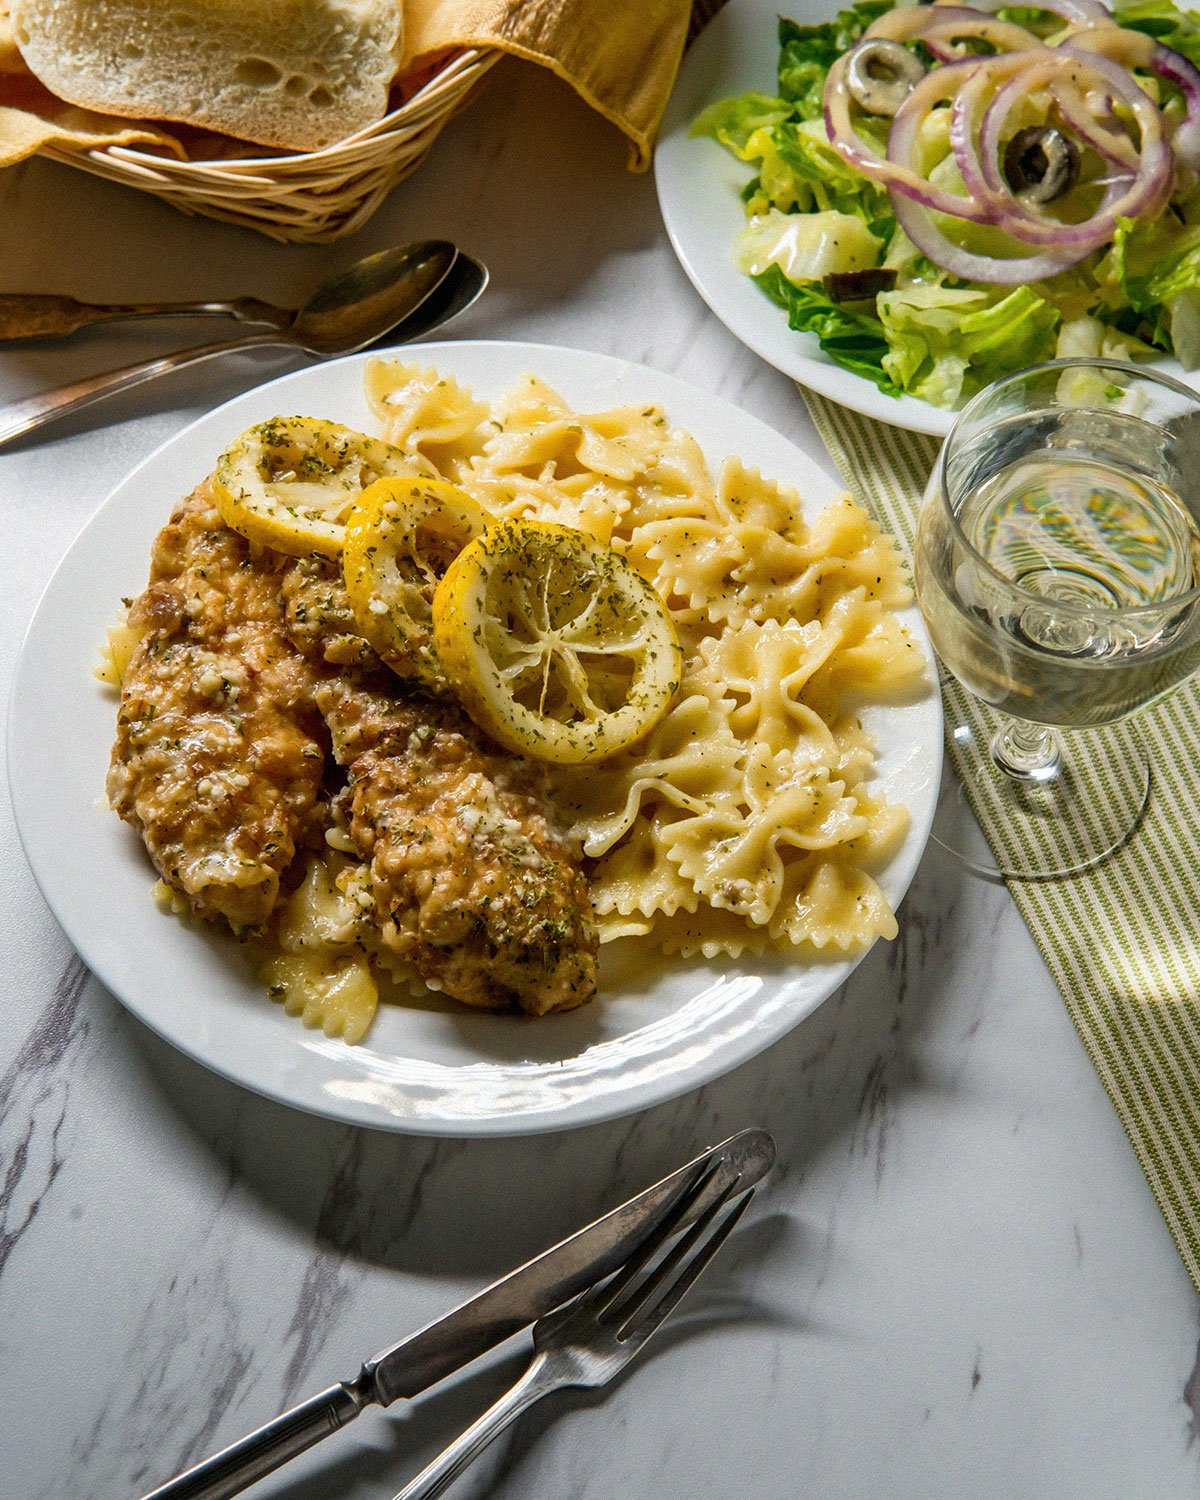 chicken francese with salad on dinner table